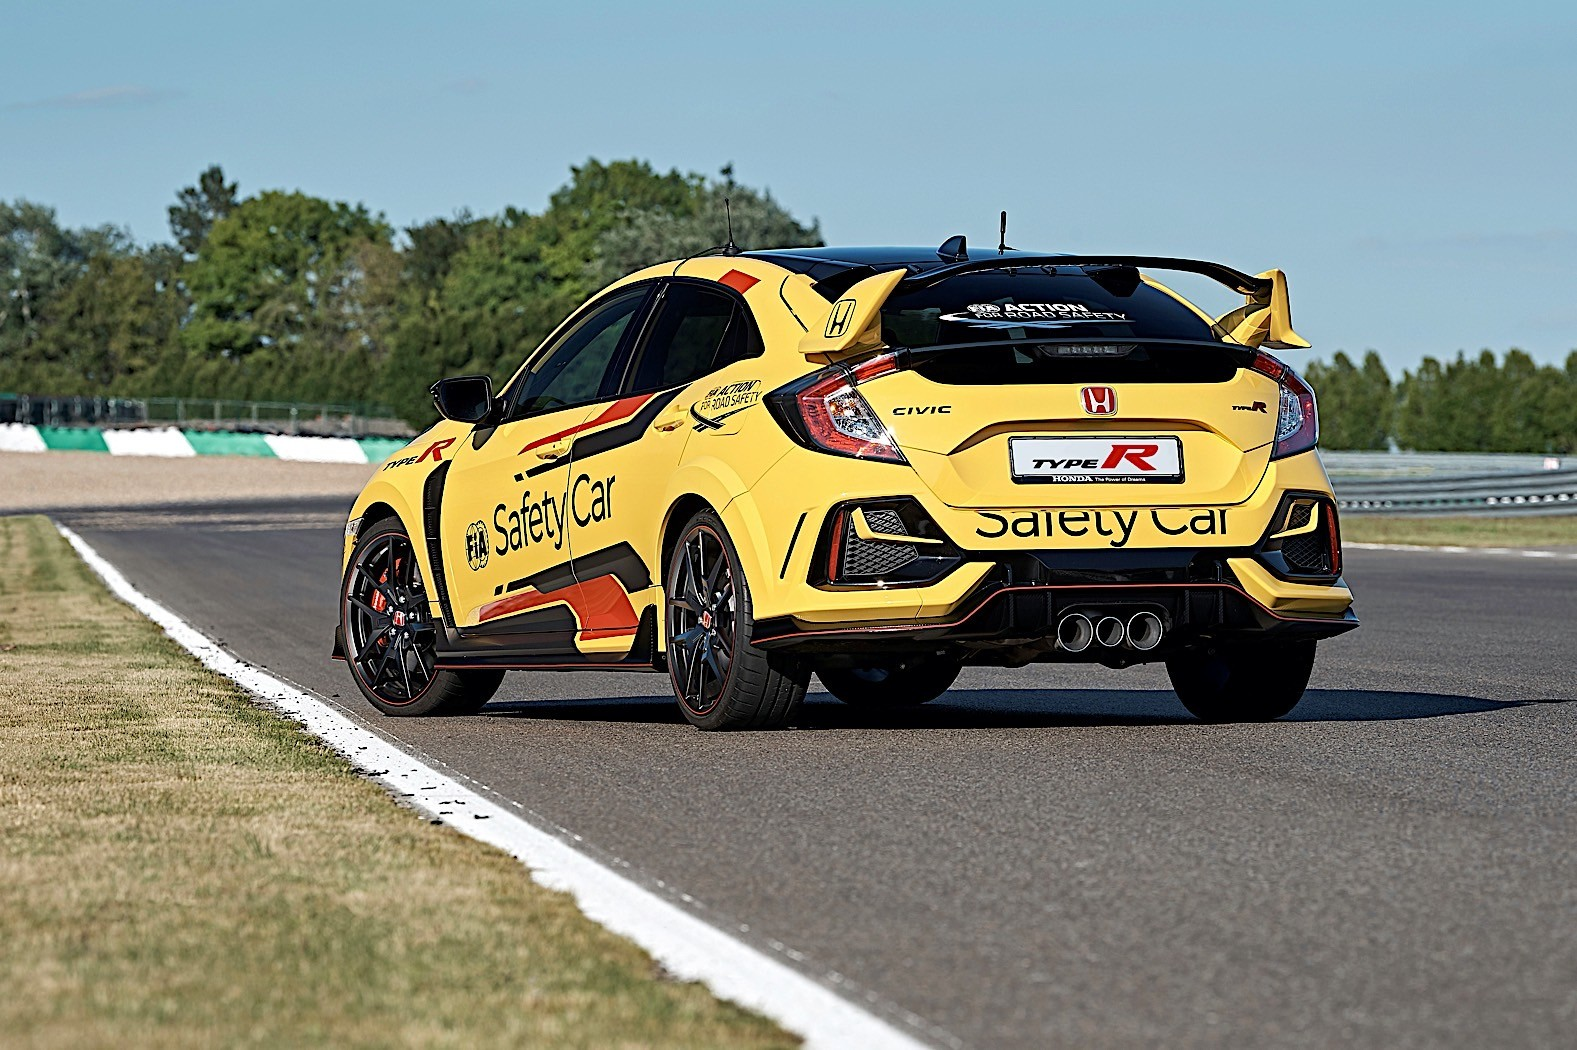 Honda_Civic_Type_R_Limited_safety_car_WTCR_0005